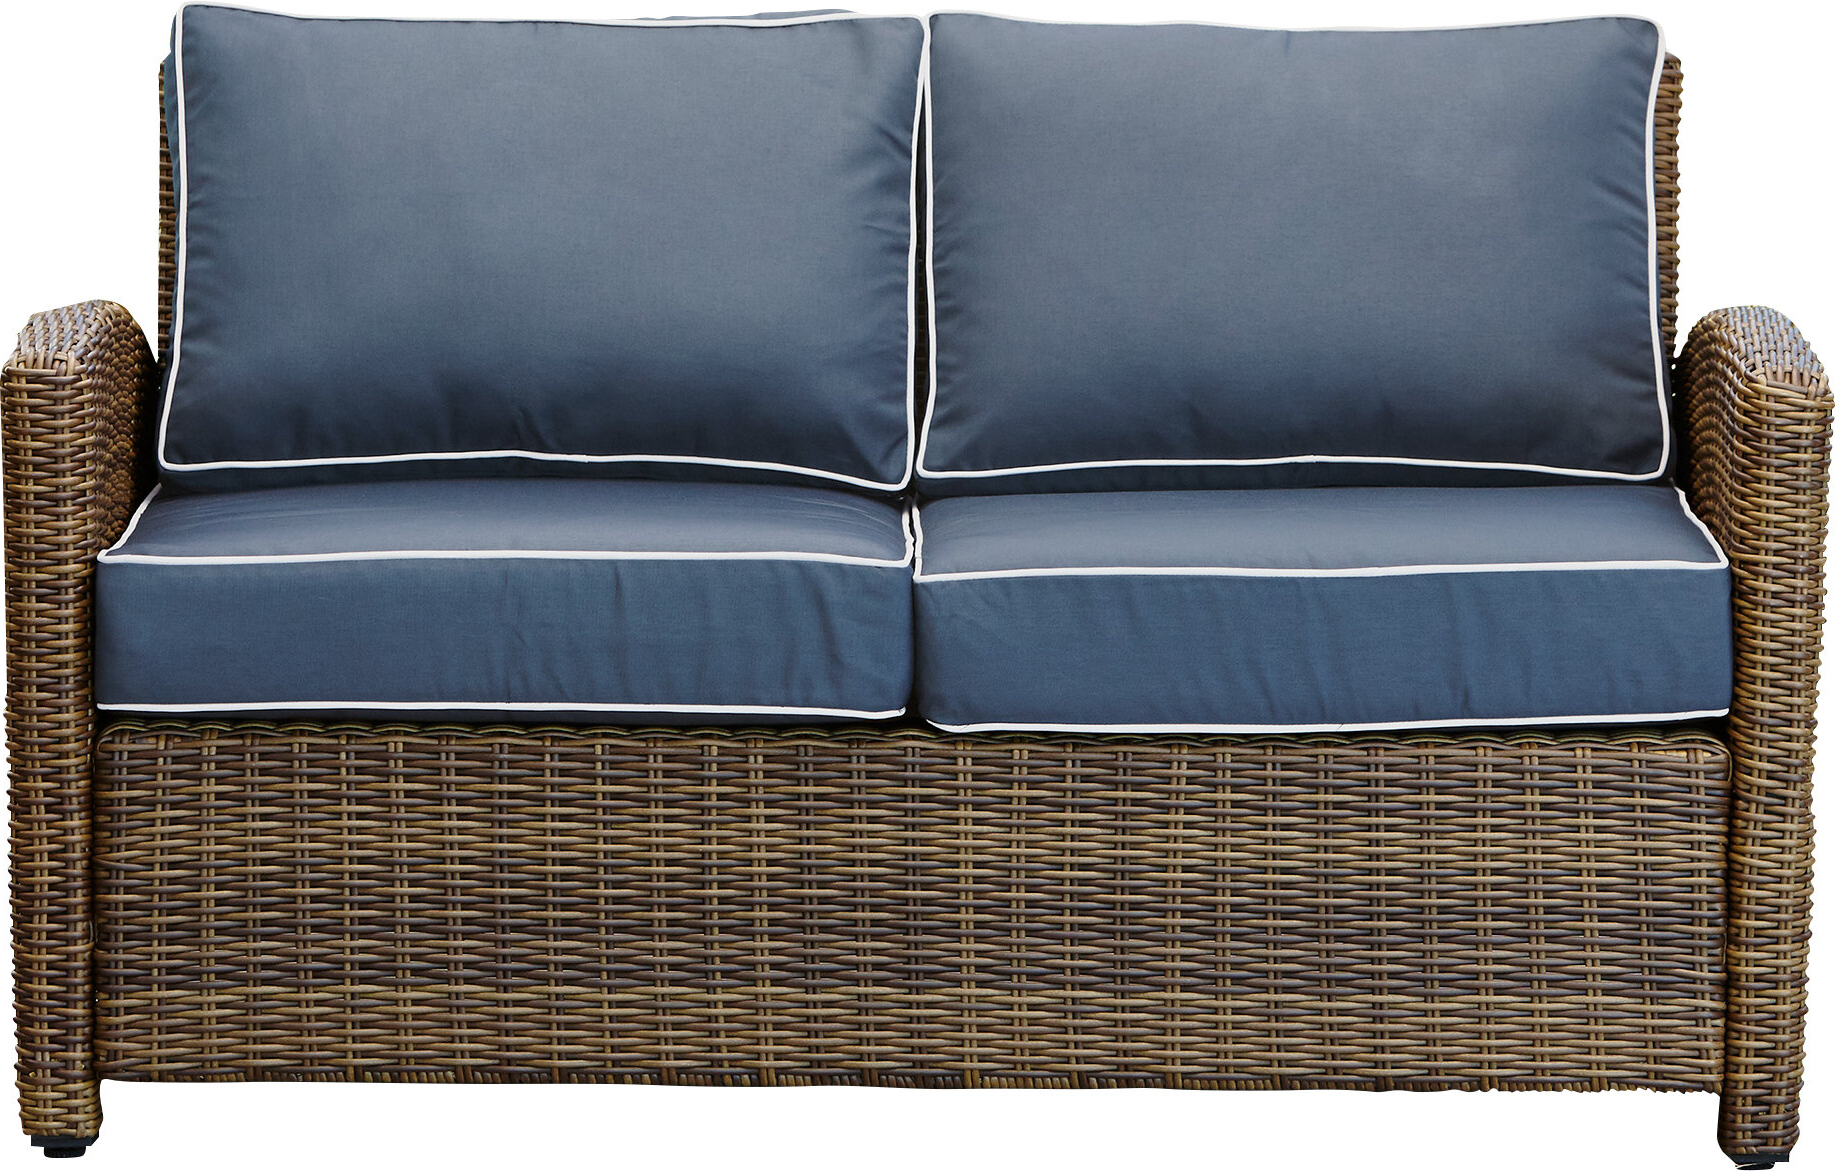 Lawson Wicker Loveseat With Cushions In Best And Newest Linwood Loveseats With Cushions (View 21 of 25)